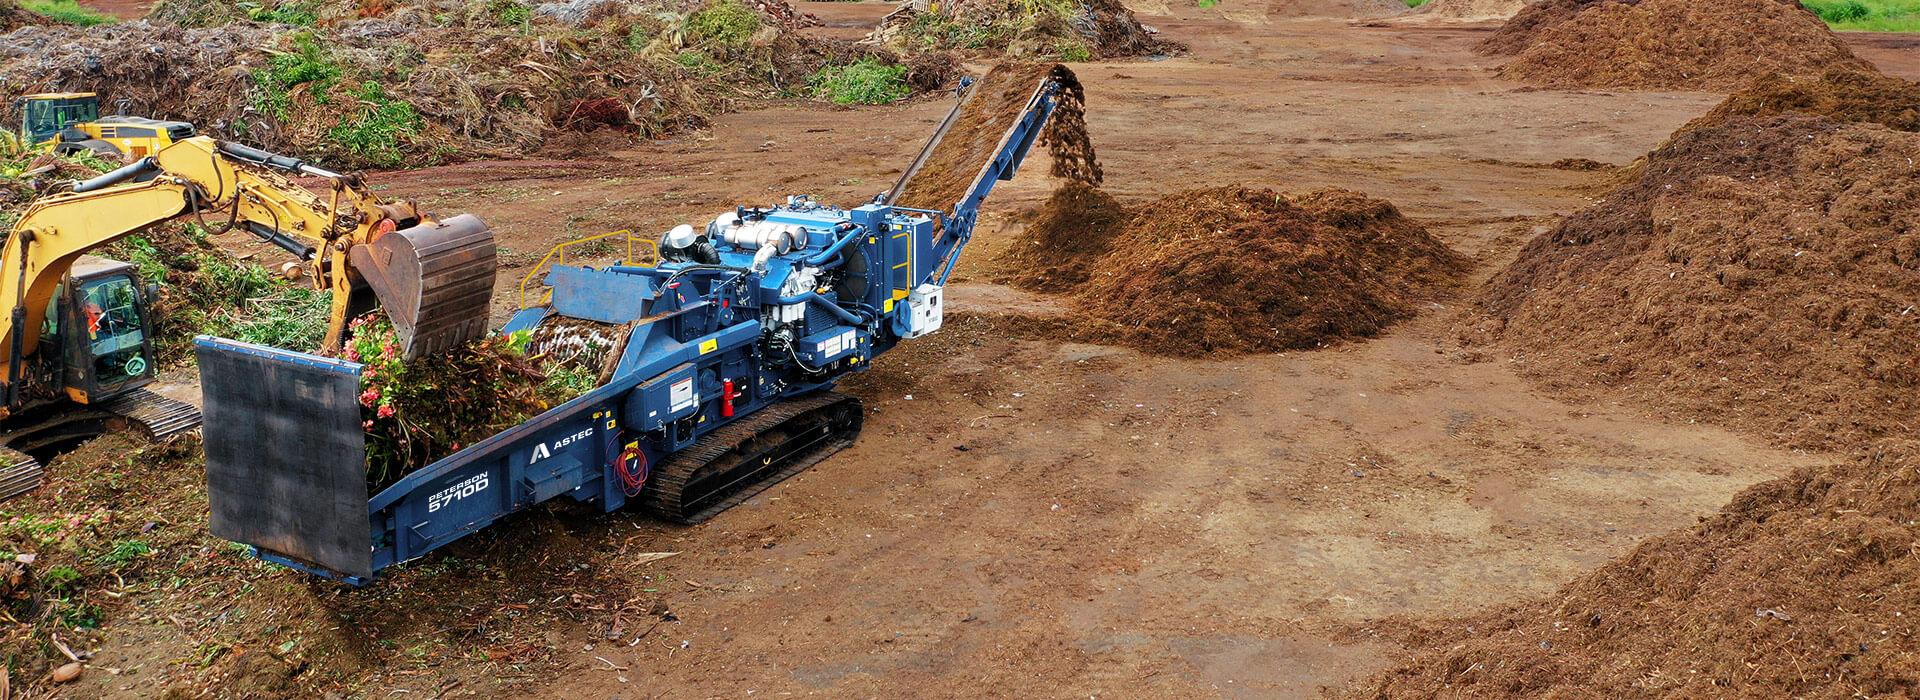 Astec Peterson 5710D Horizontal Grinder making compost from green waste in Hawaii with an loading excavator.